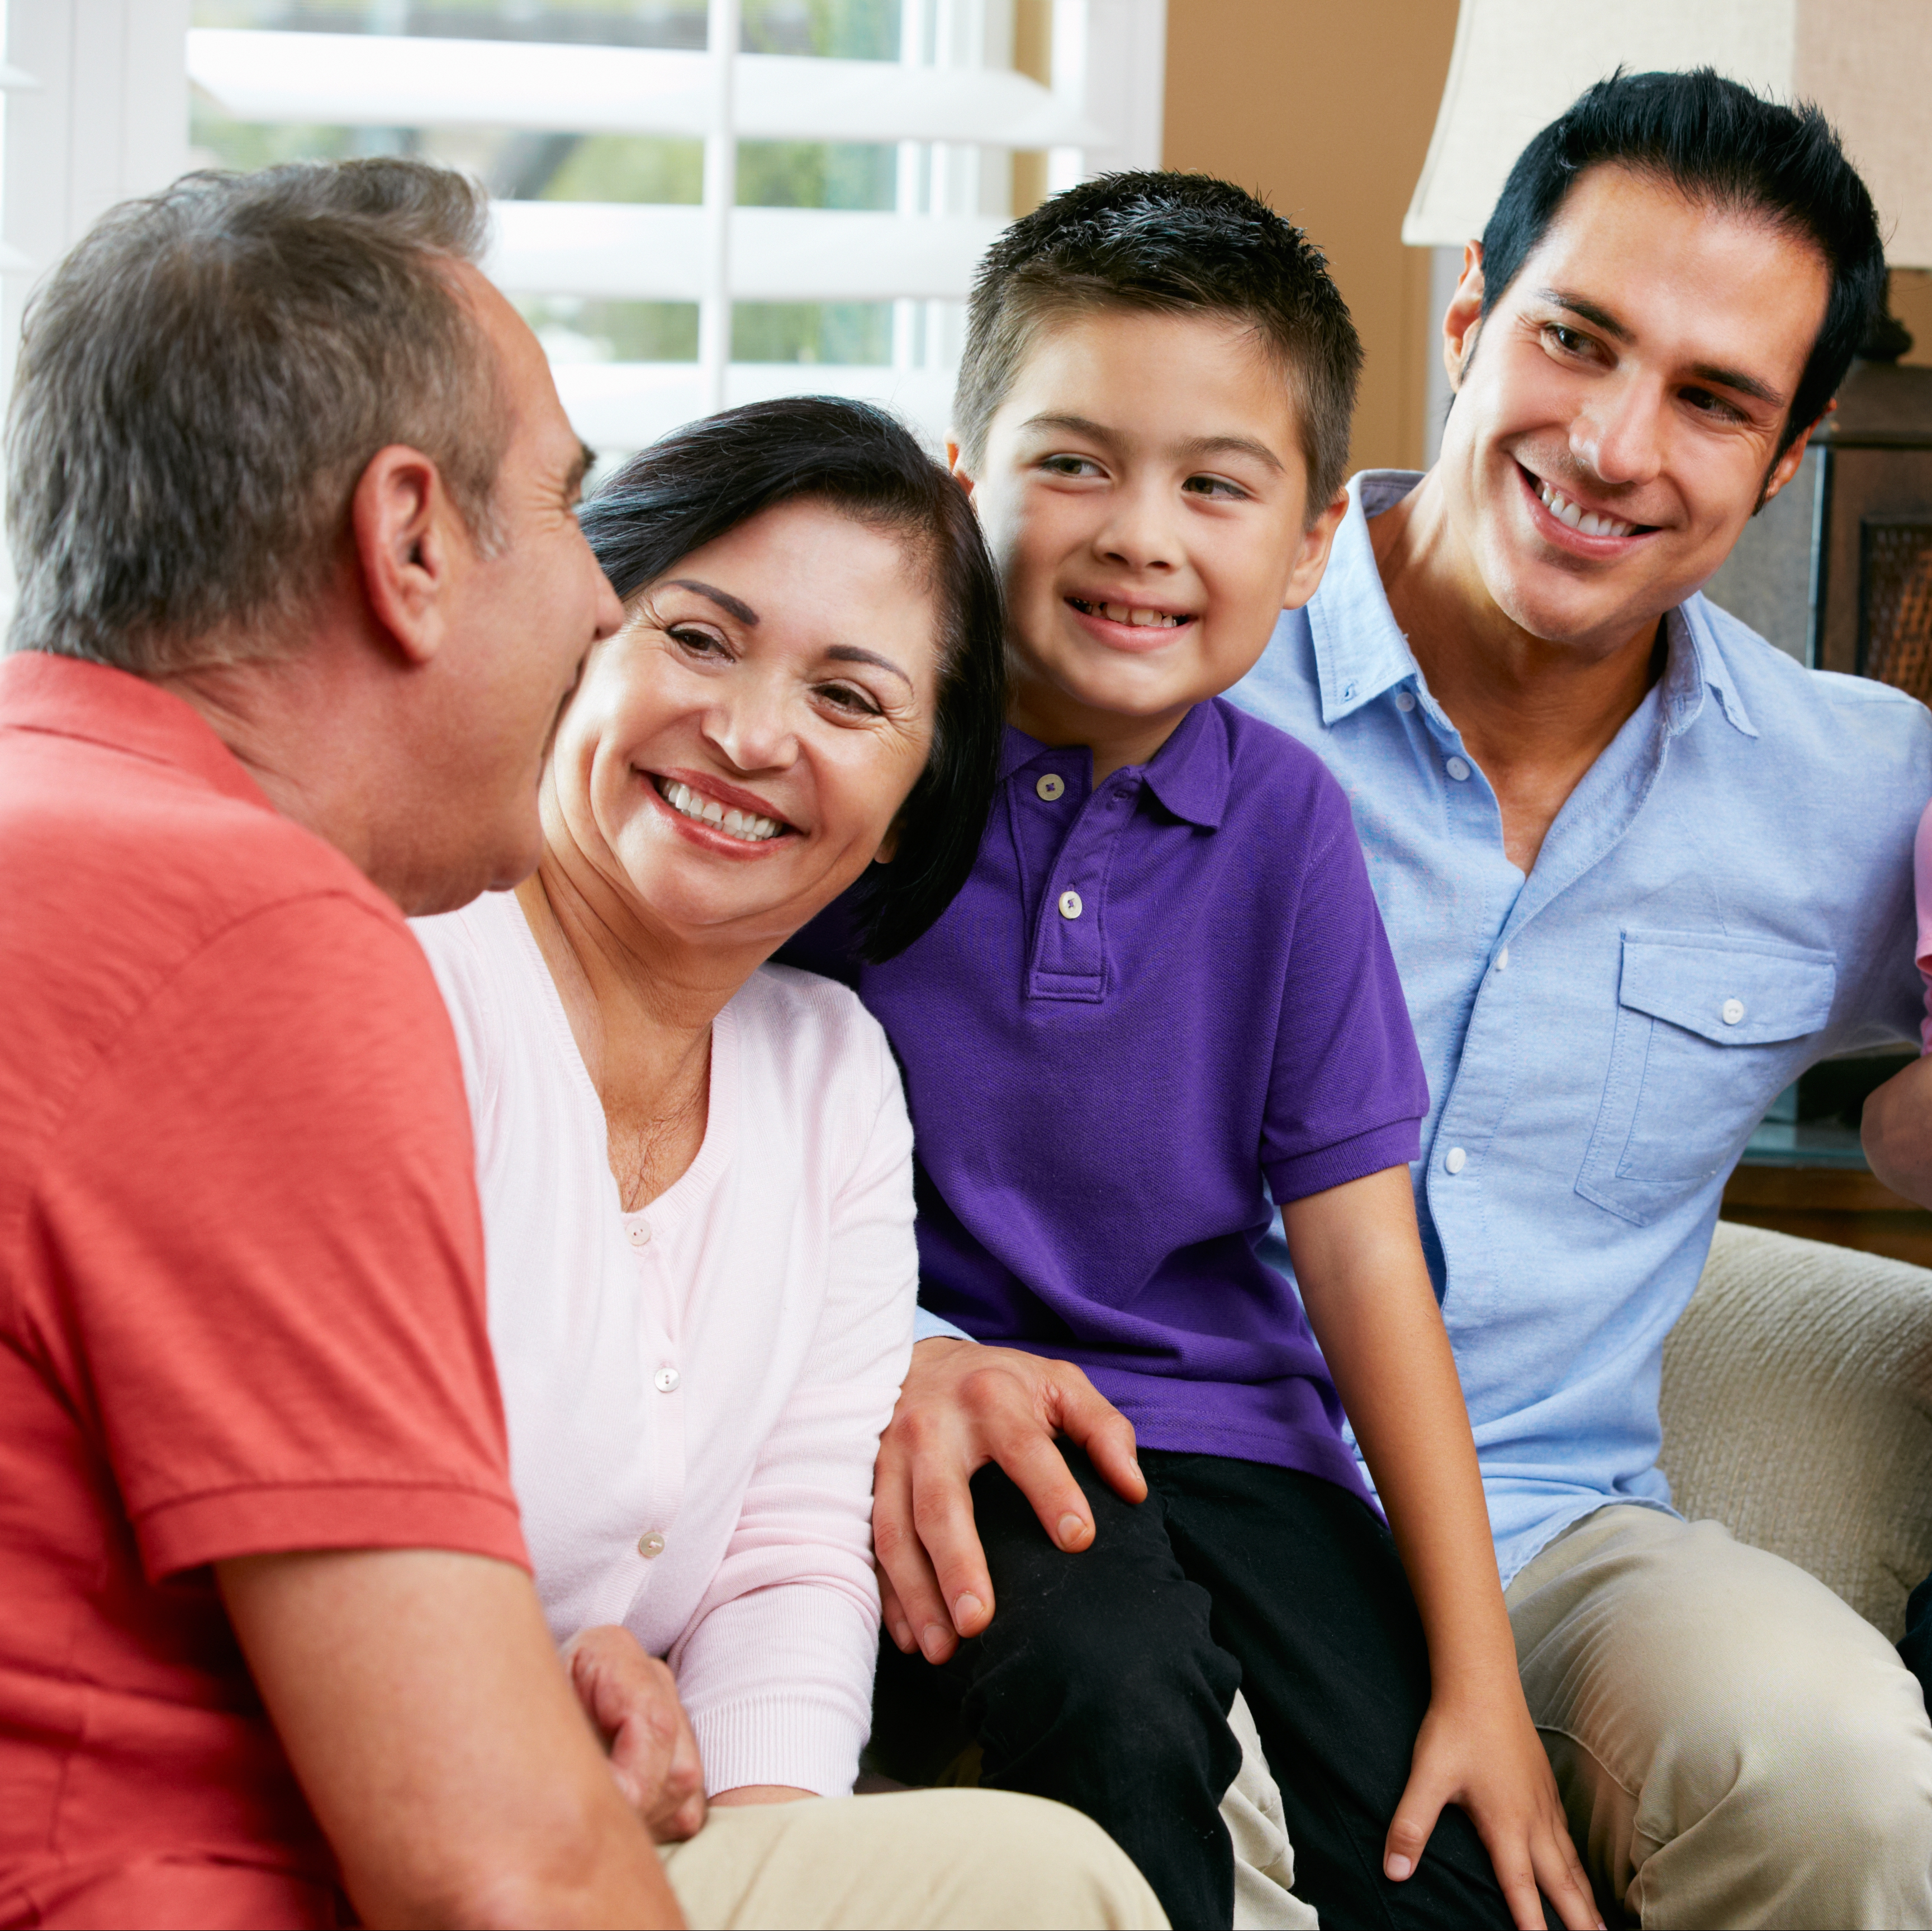 a three generational family sitting on a couch laughing and smiling - diversity